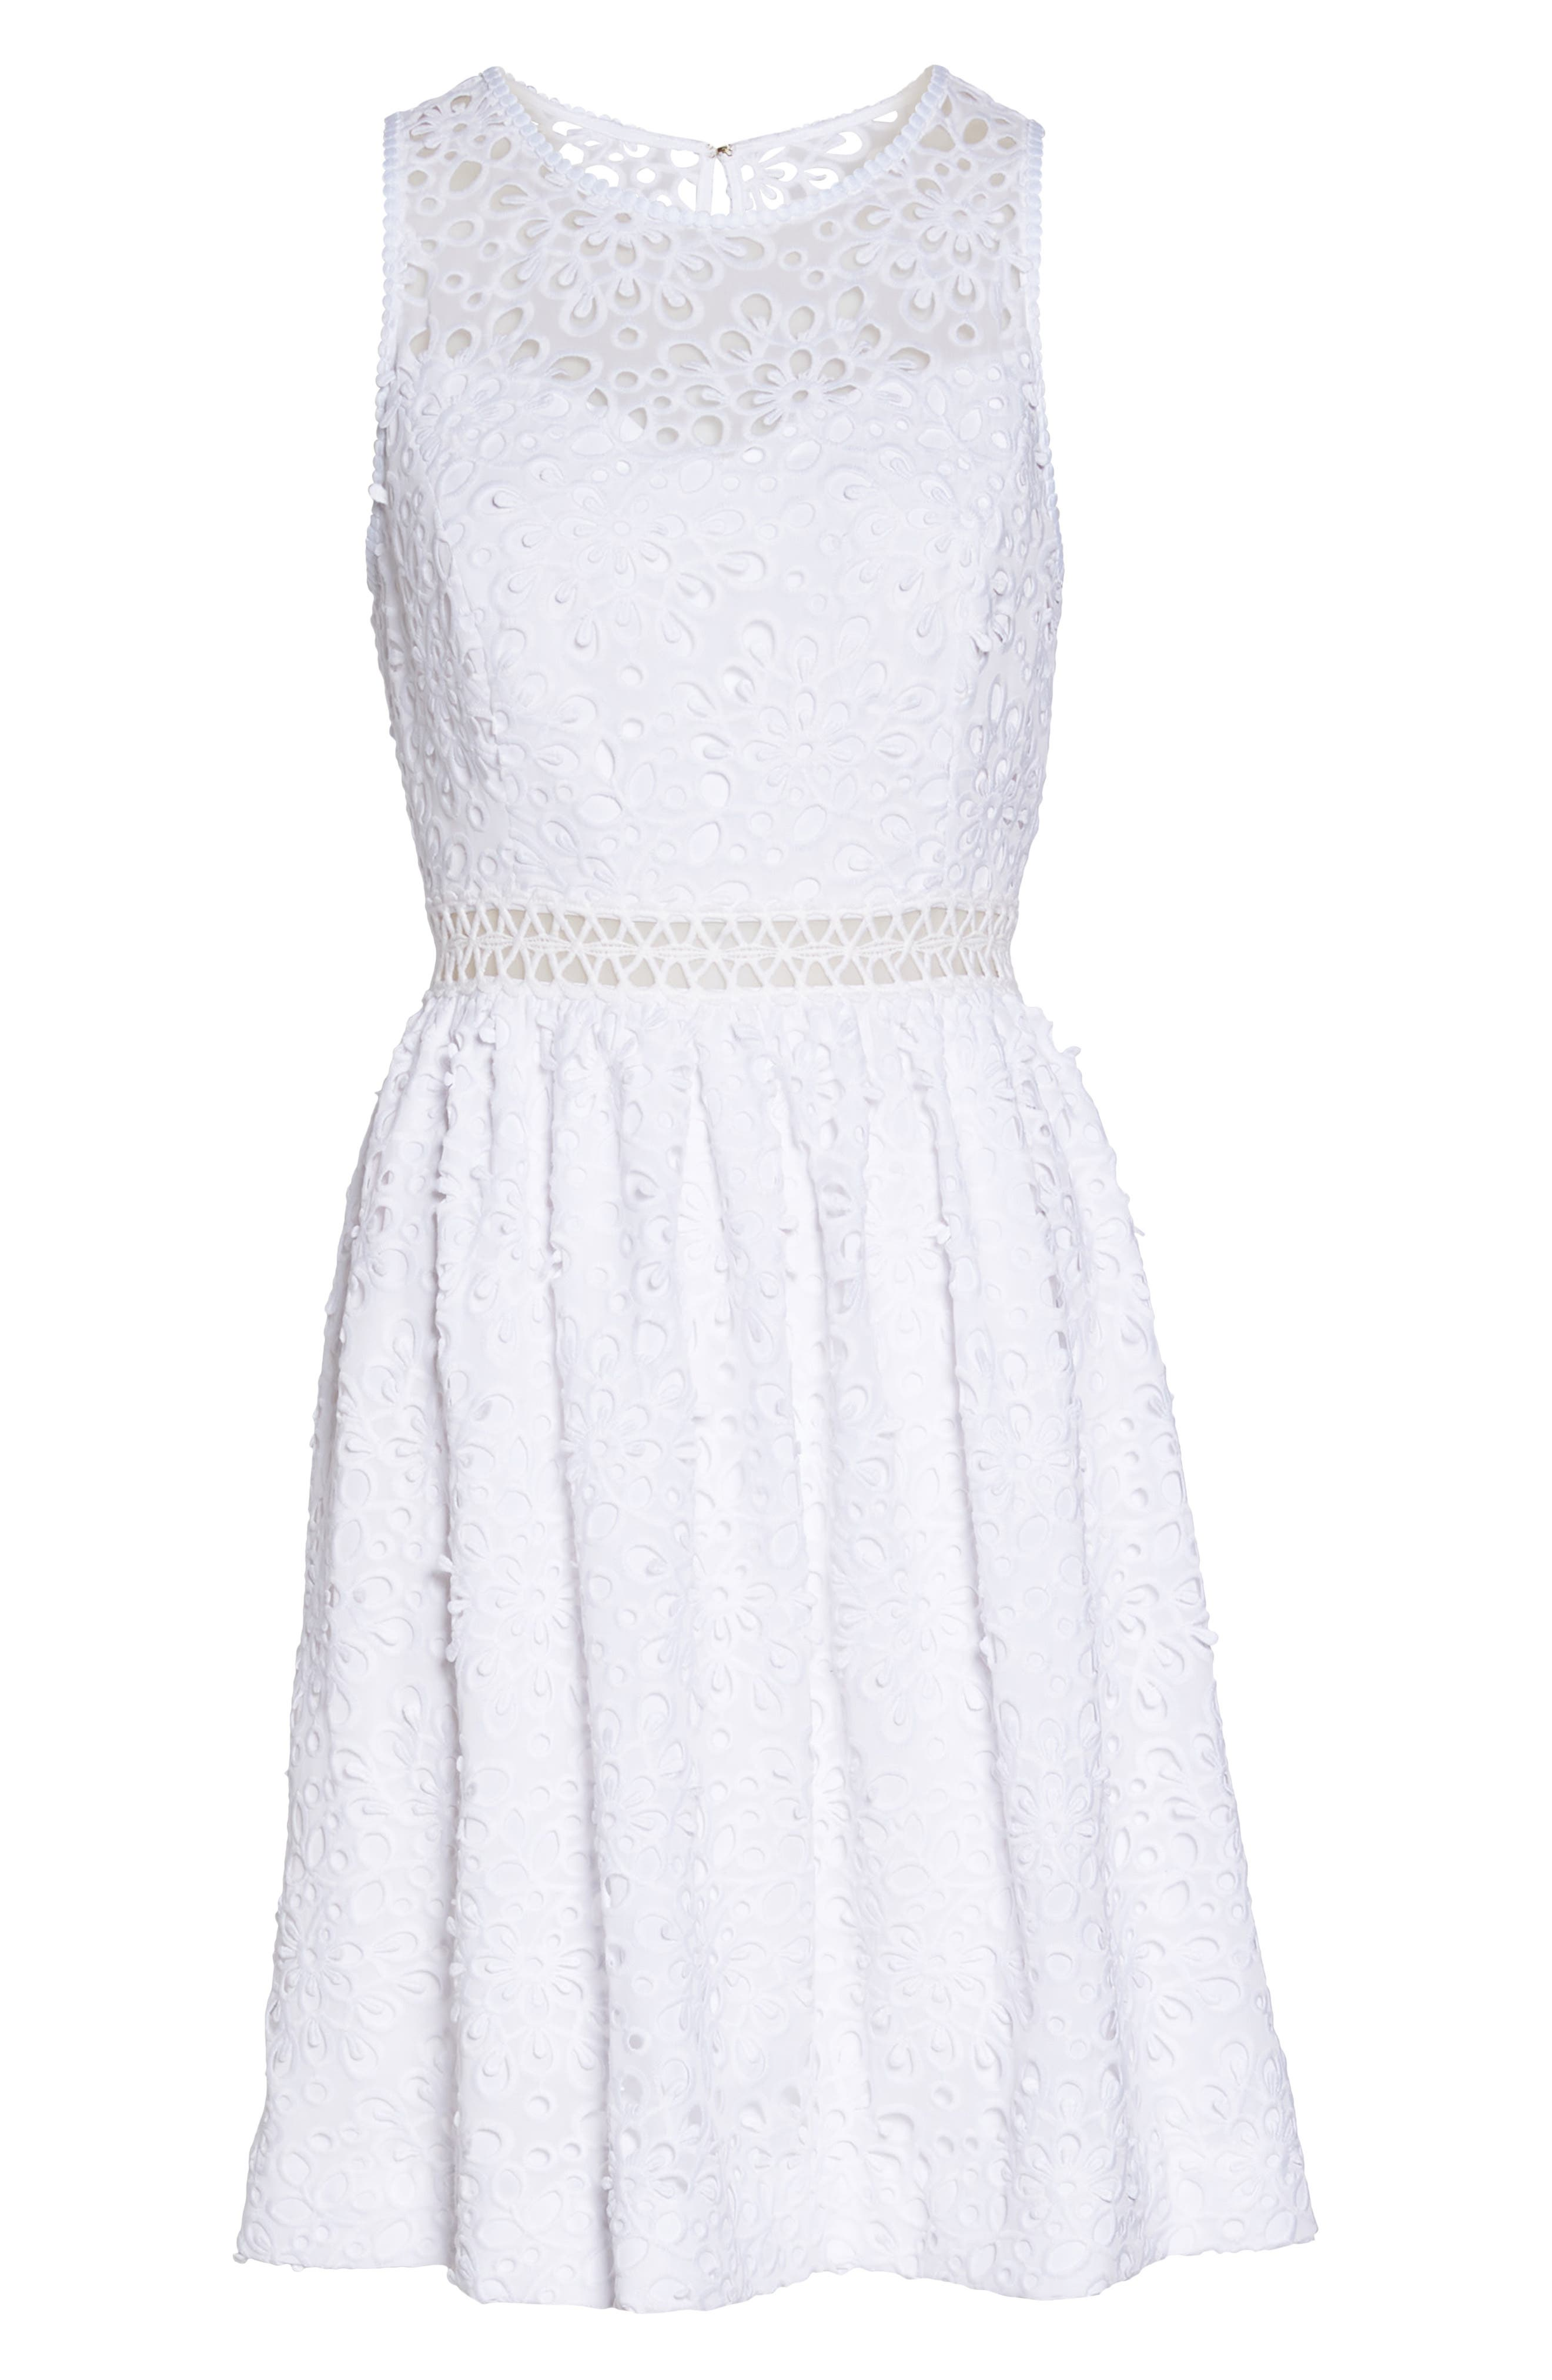 LILLY PULITZER<SUP>®</SUP>,                             Alivia Eyelet Fit & Flare Dress,                             Alternate thumbnail 6, color,                             115